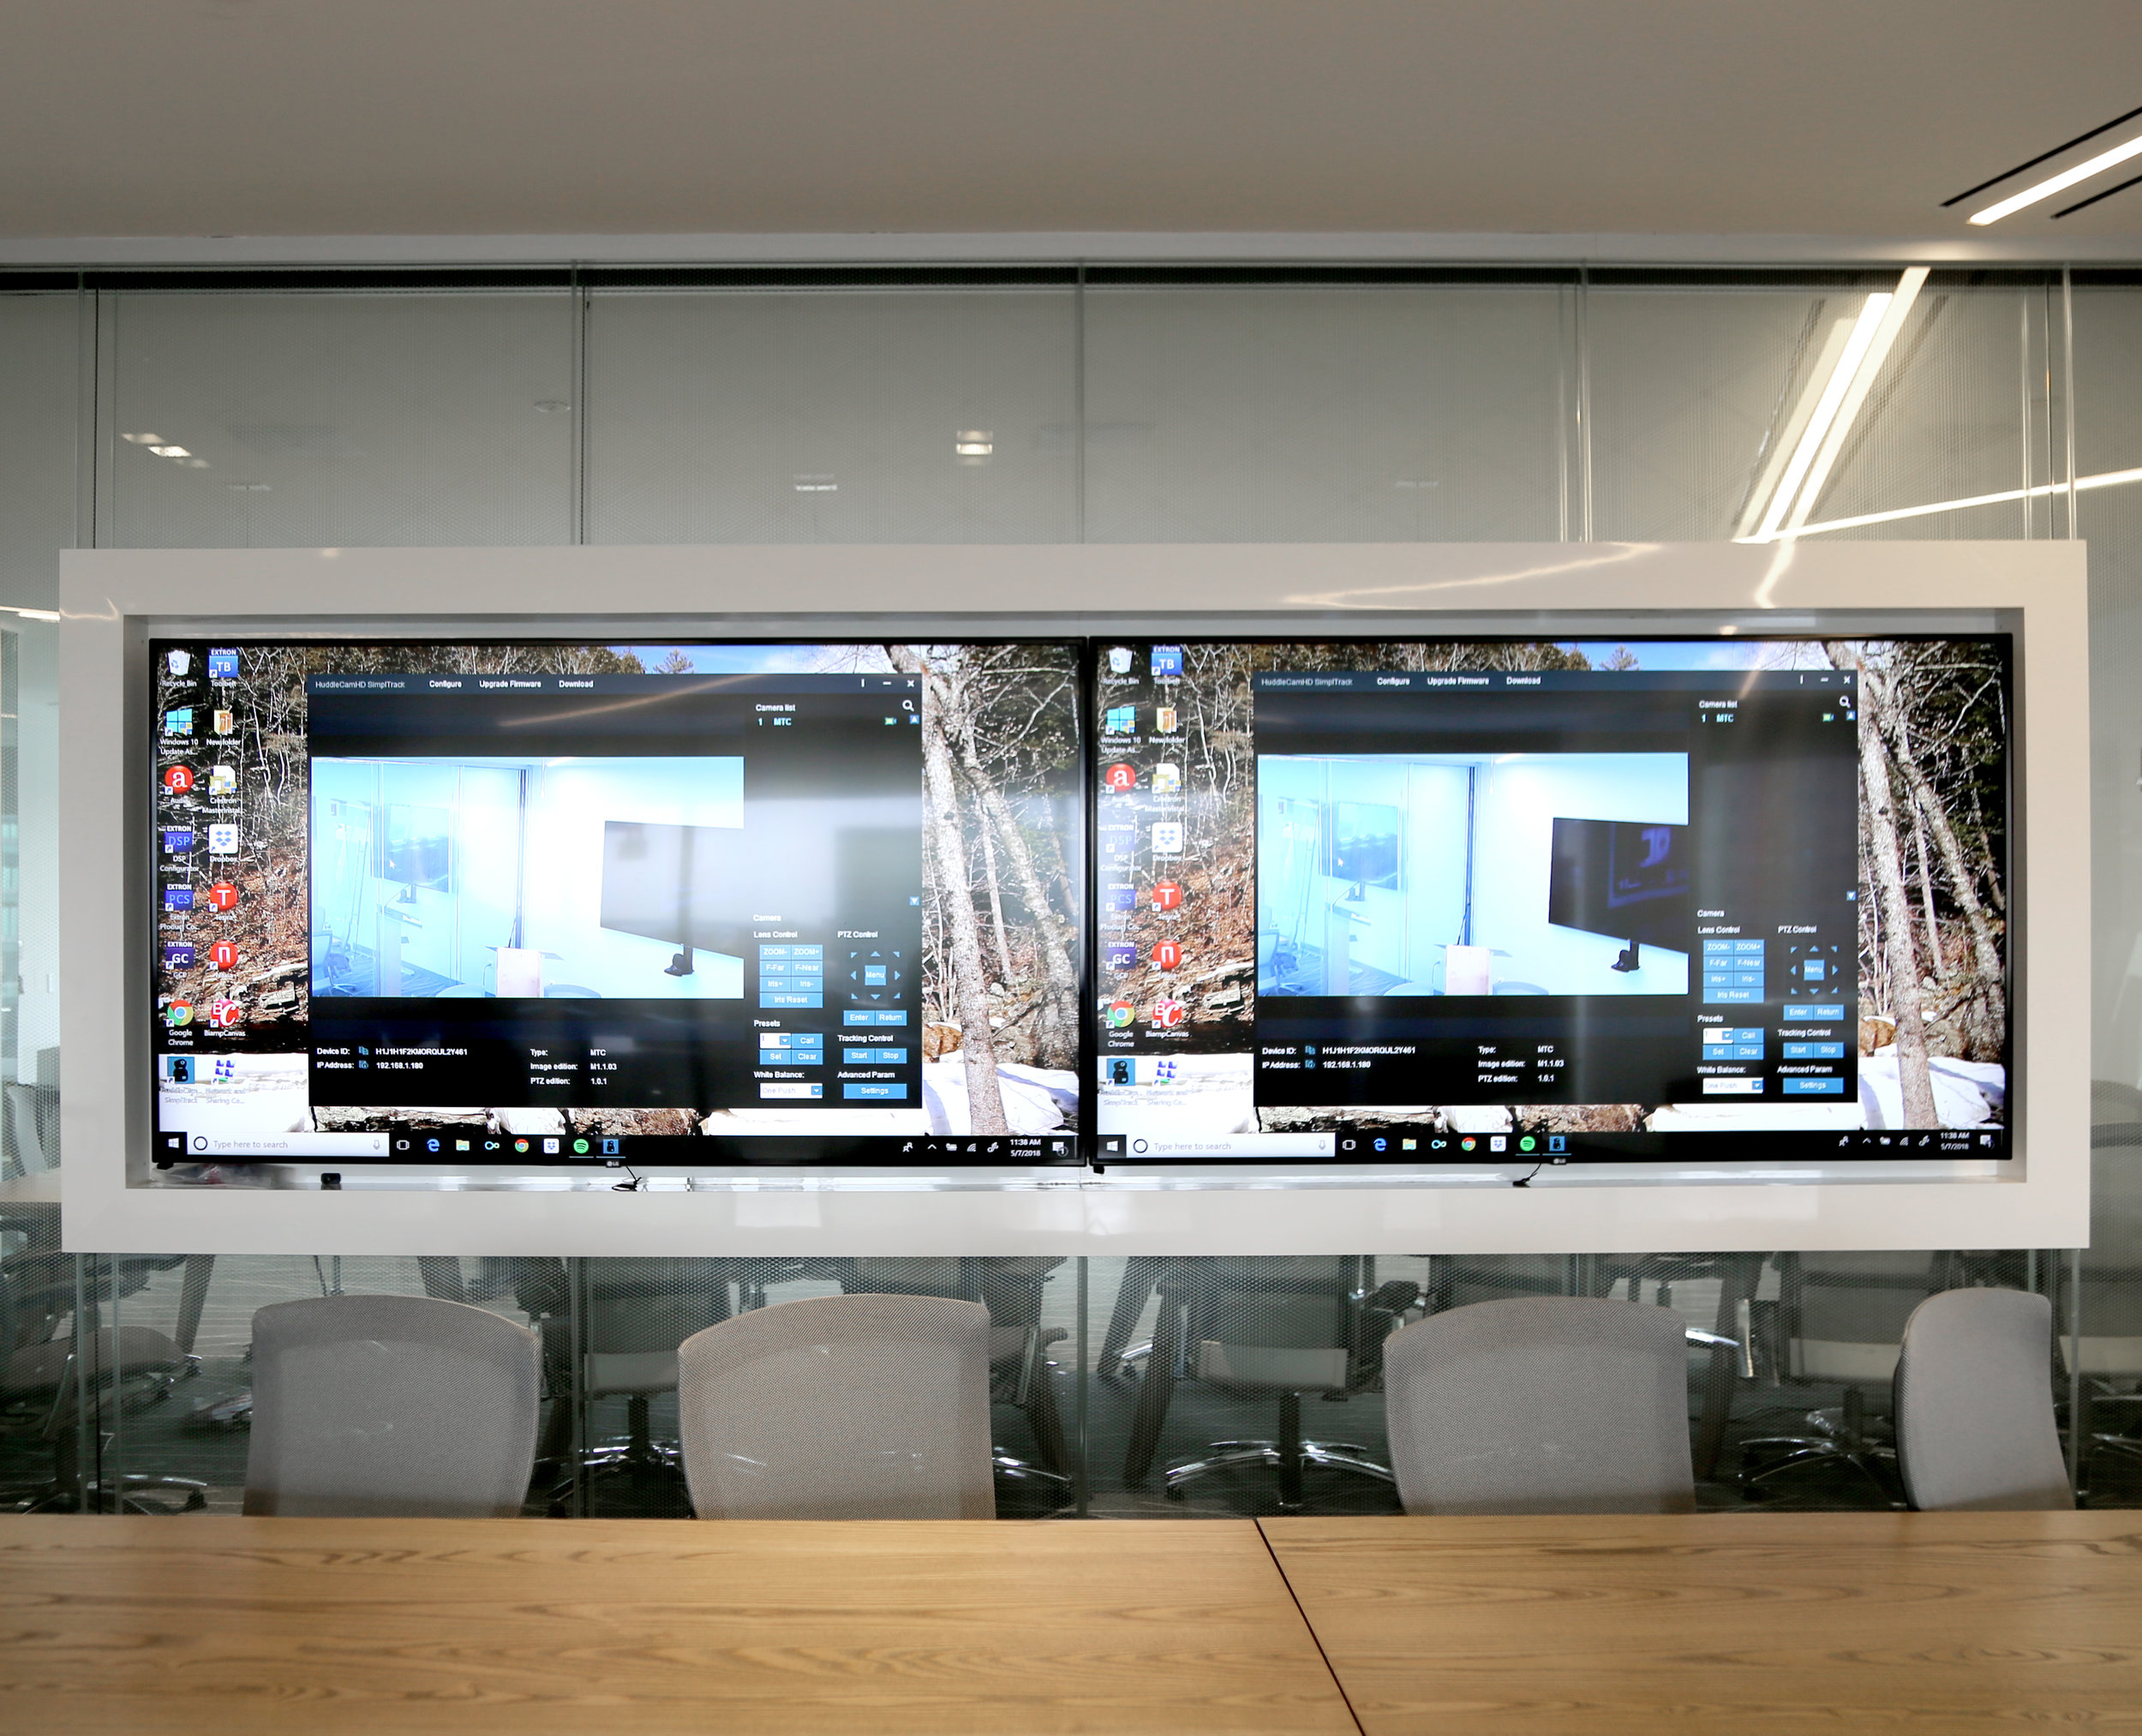 Litespace Technology Wall Mounted Television Millwork Mirror Glazing - Spaceworks AI.jpg